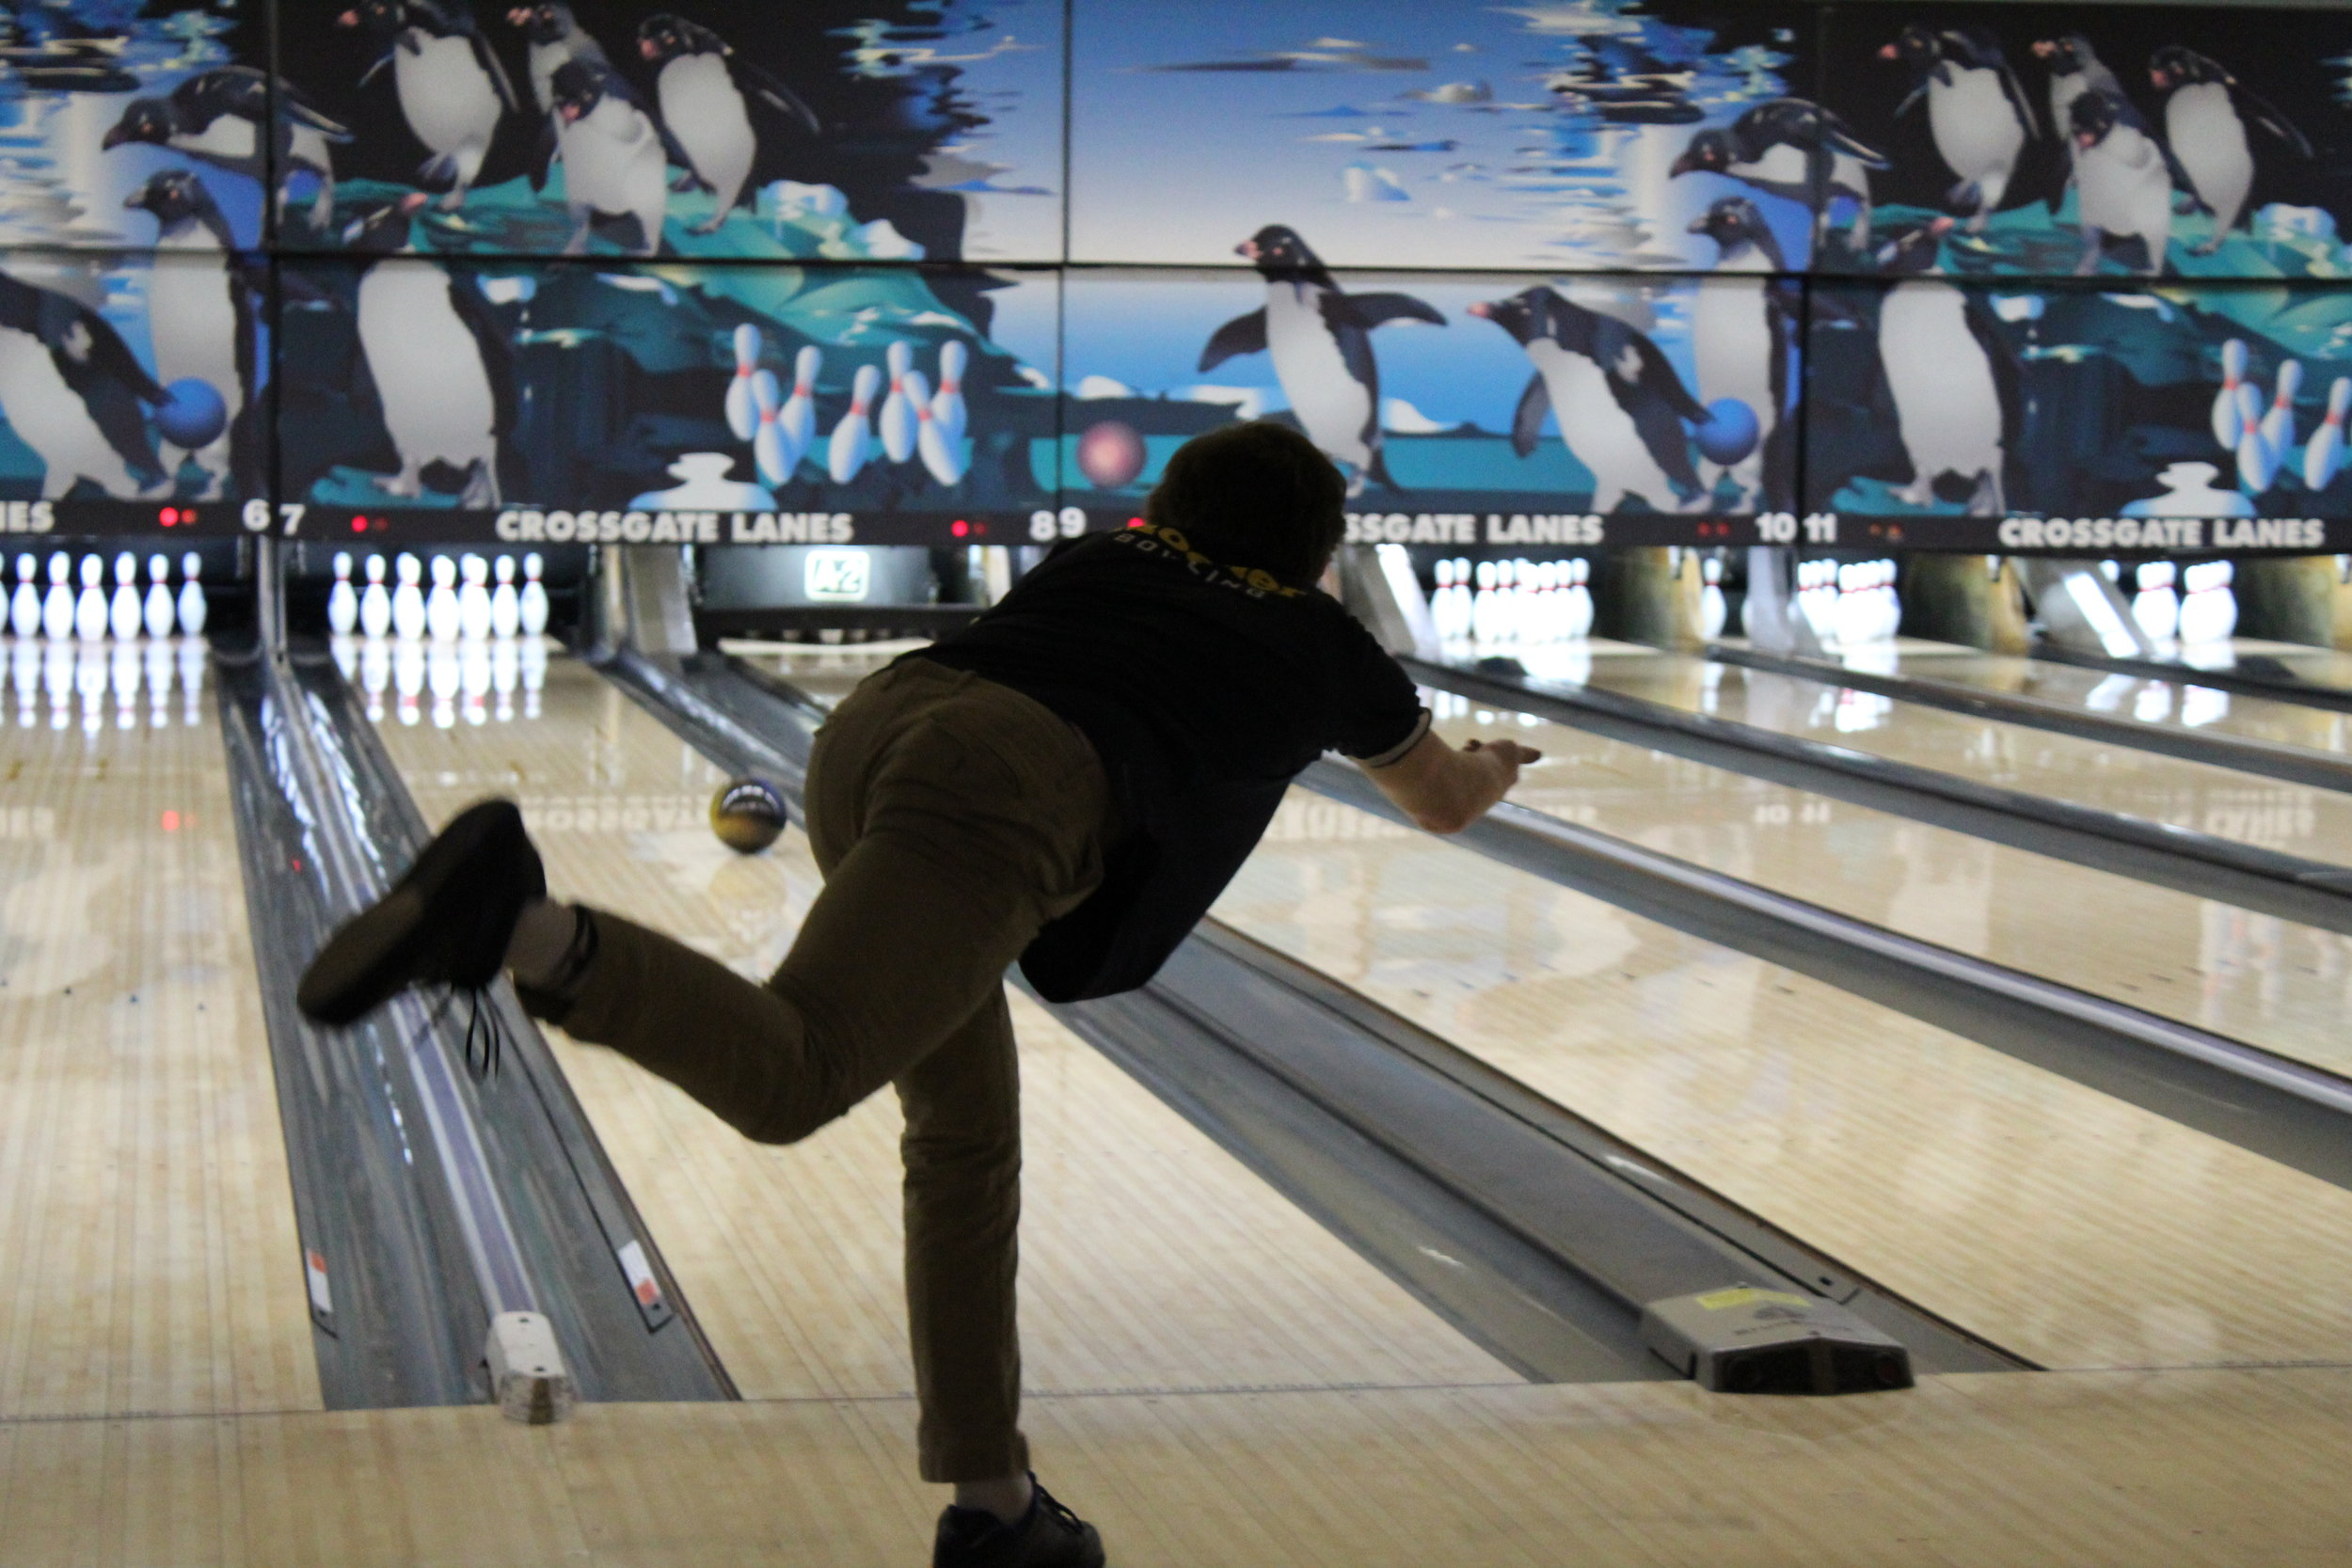 Moeller Bowling hits the lanes at Crossgate. Photo by Tara Grewe